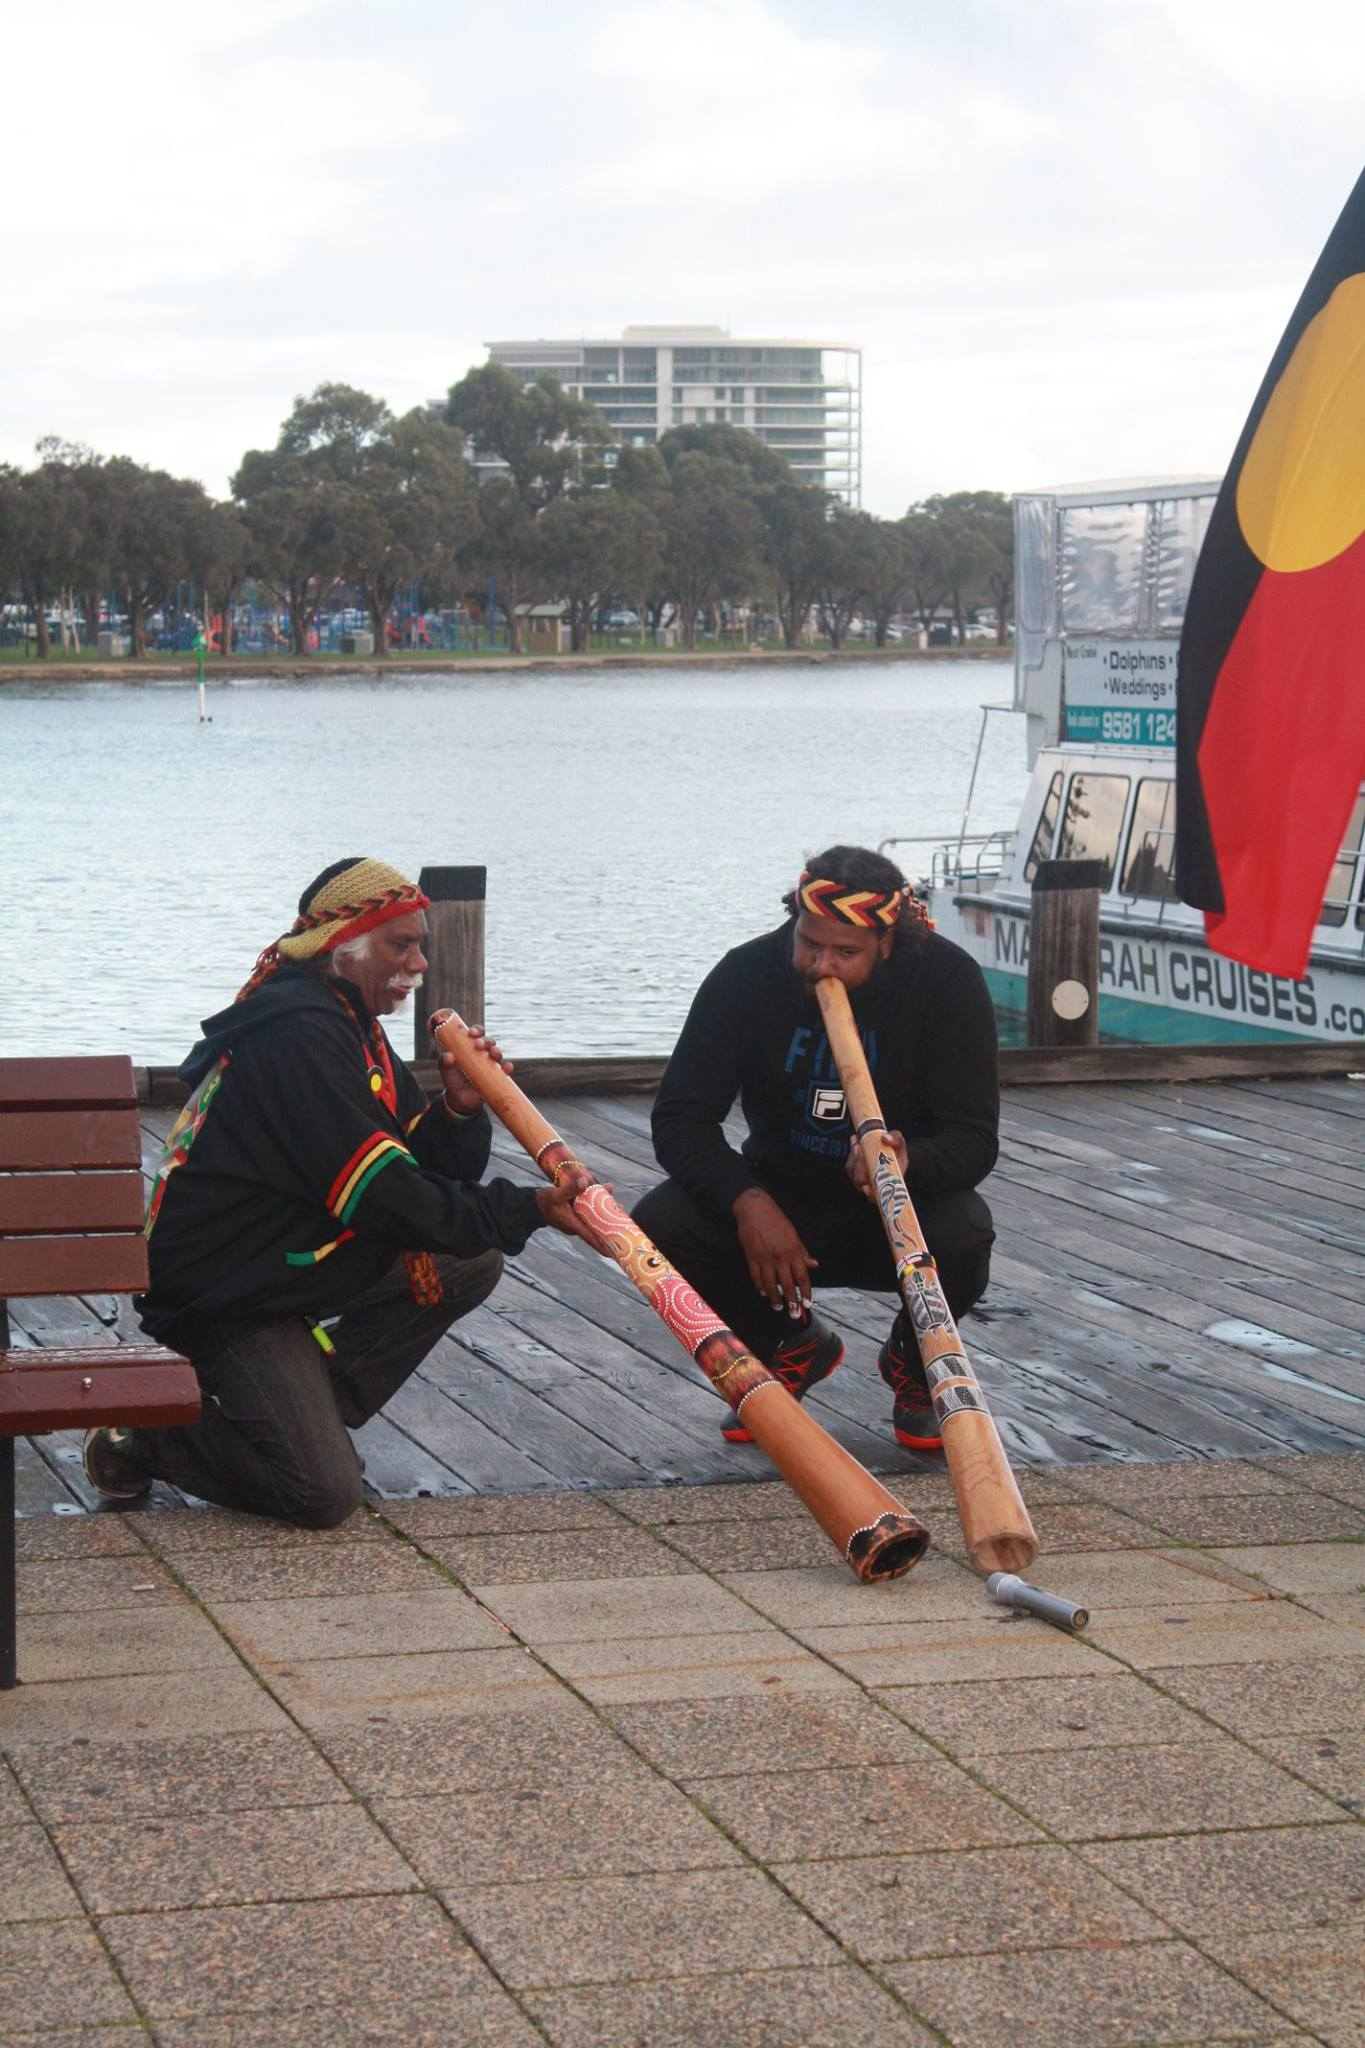 Didgeridoo's sang as the flags were raised.